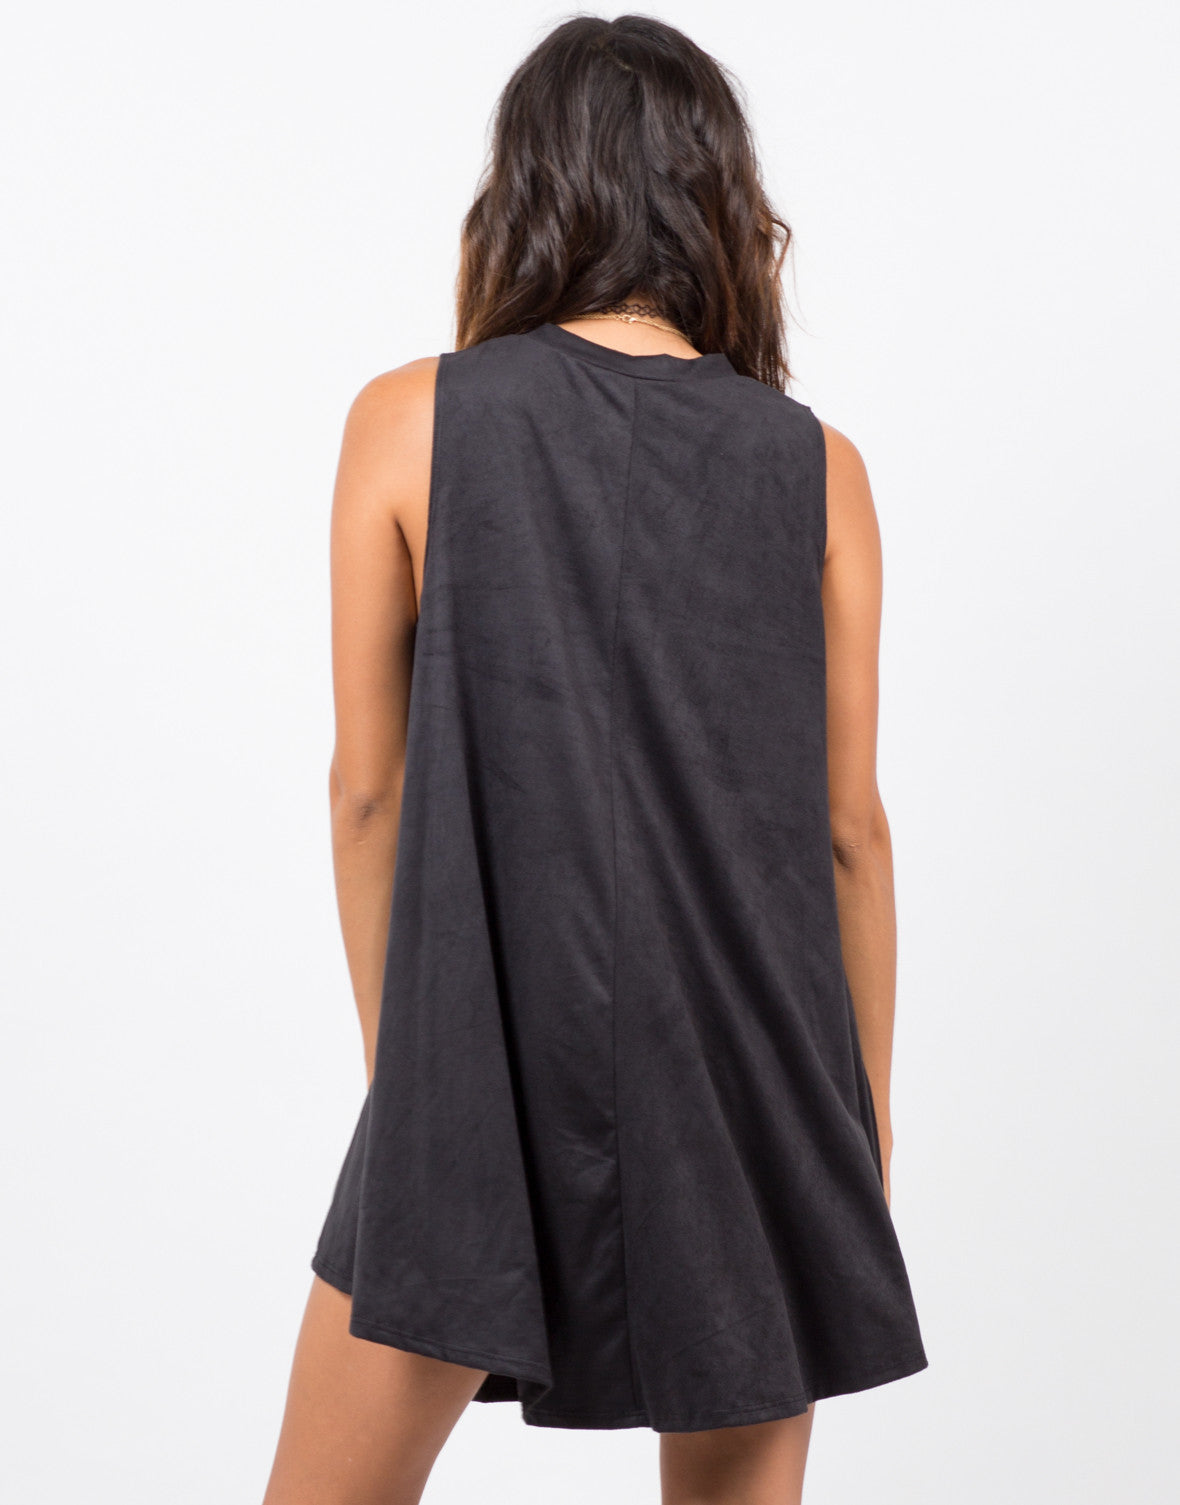 Back View of Suede A-LIne Dress